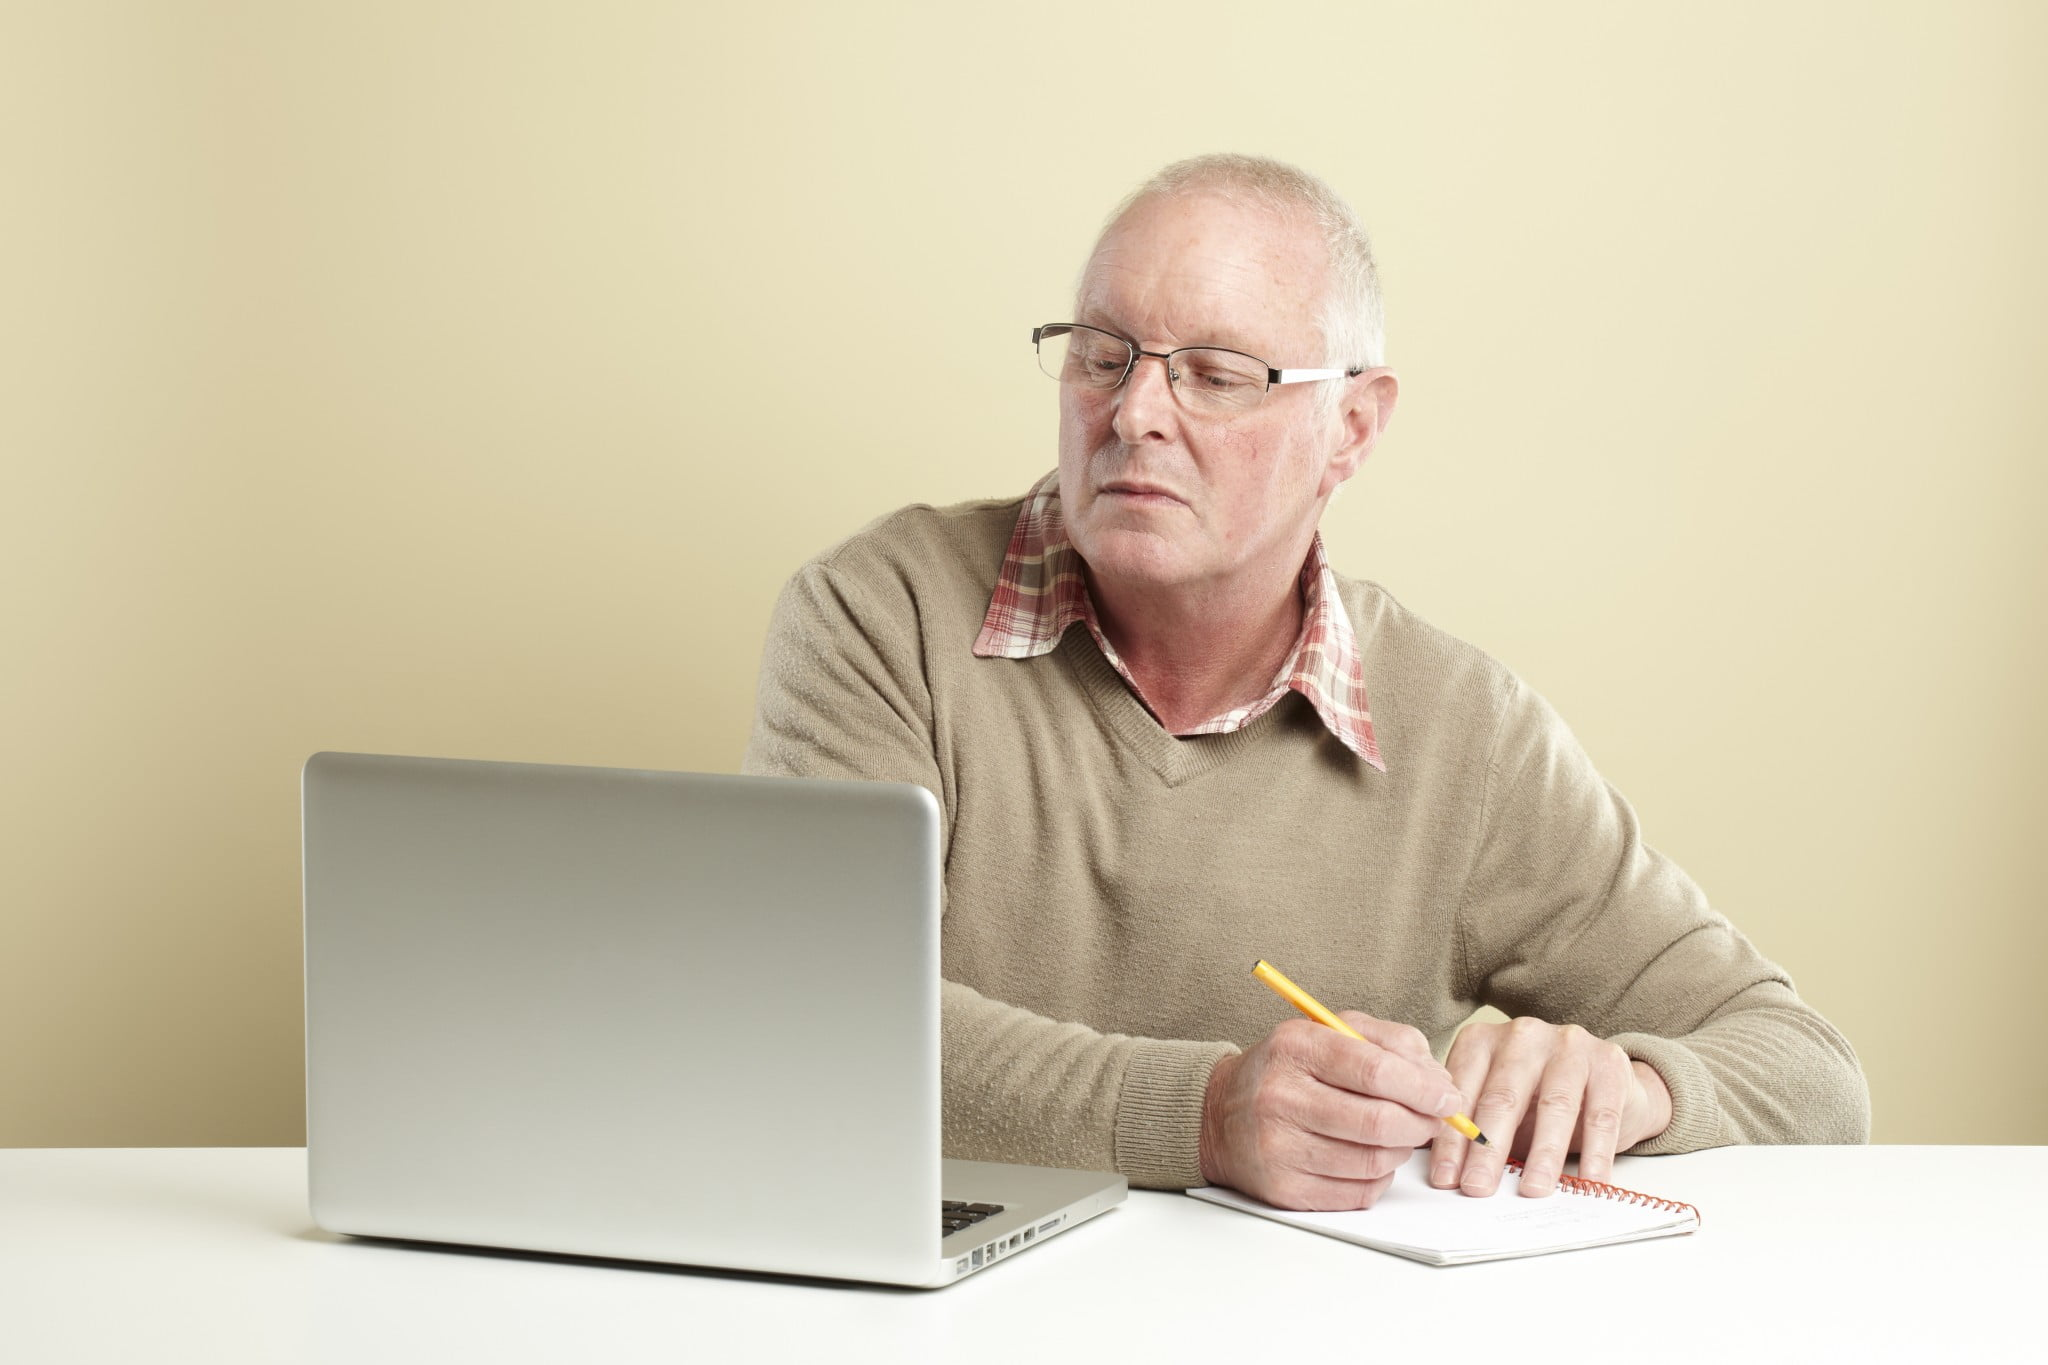 man reading laptop and making notes